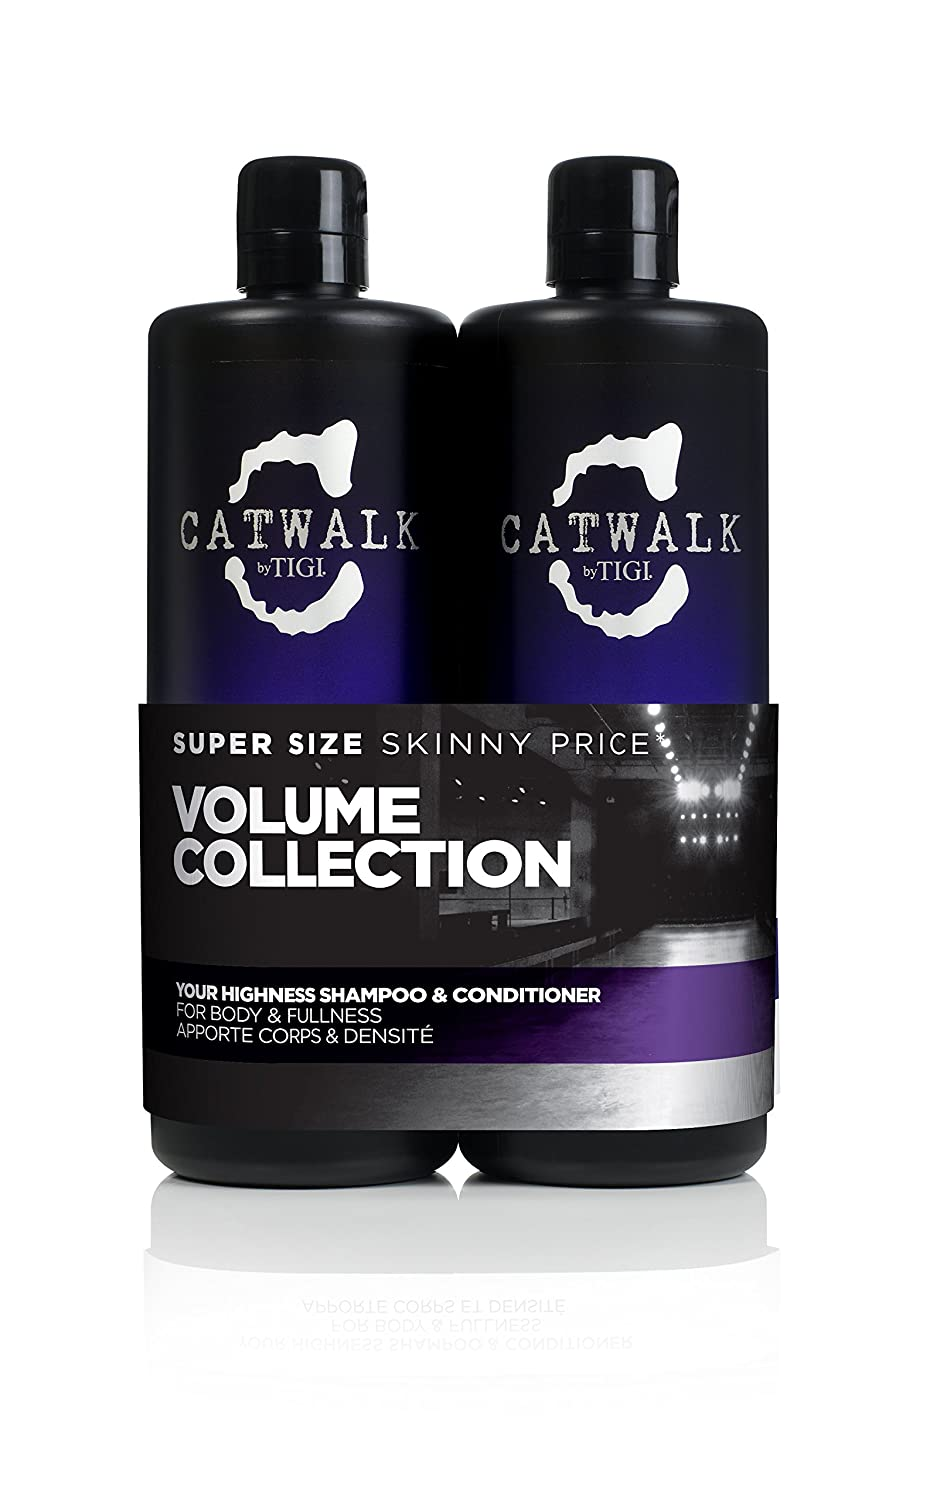 CATWALK by TIGI Your Highness Tween Duo Volume Collection Shampoo and Conditioner for Fine Hair 2x750 ml 615908950755